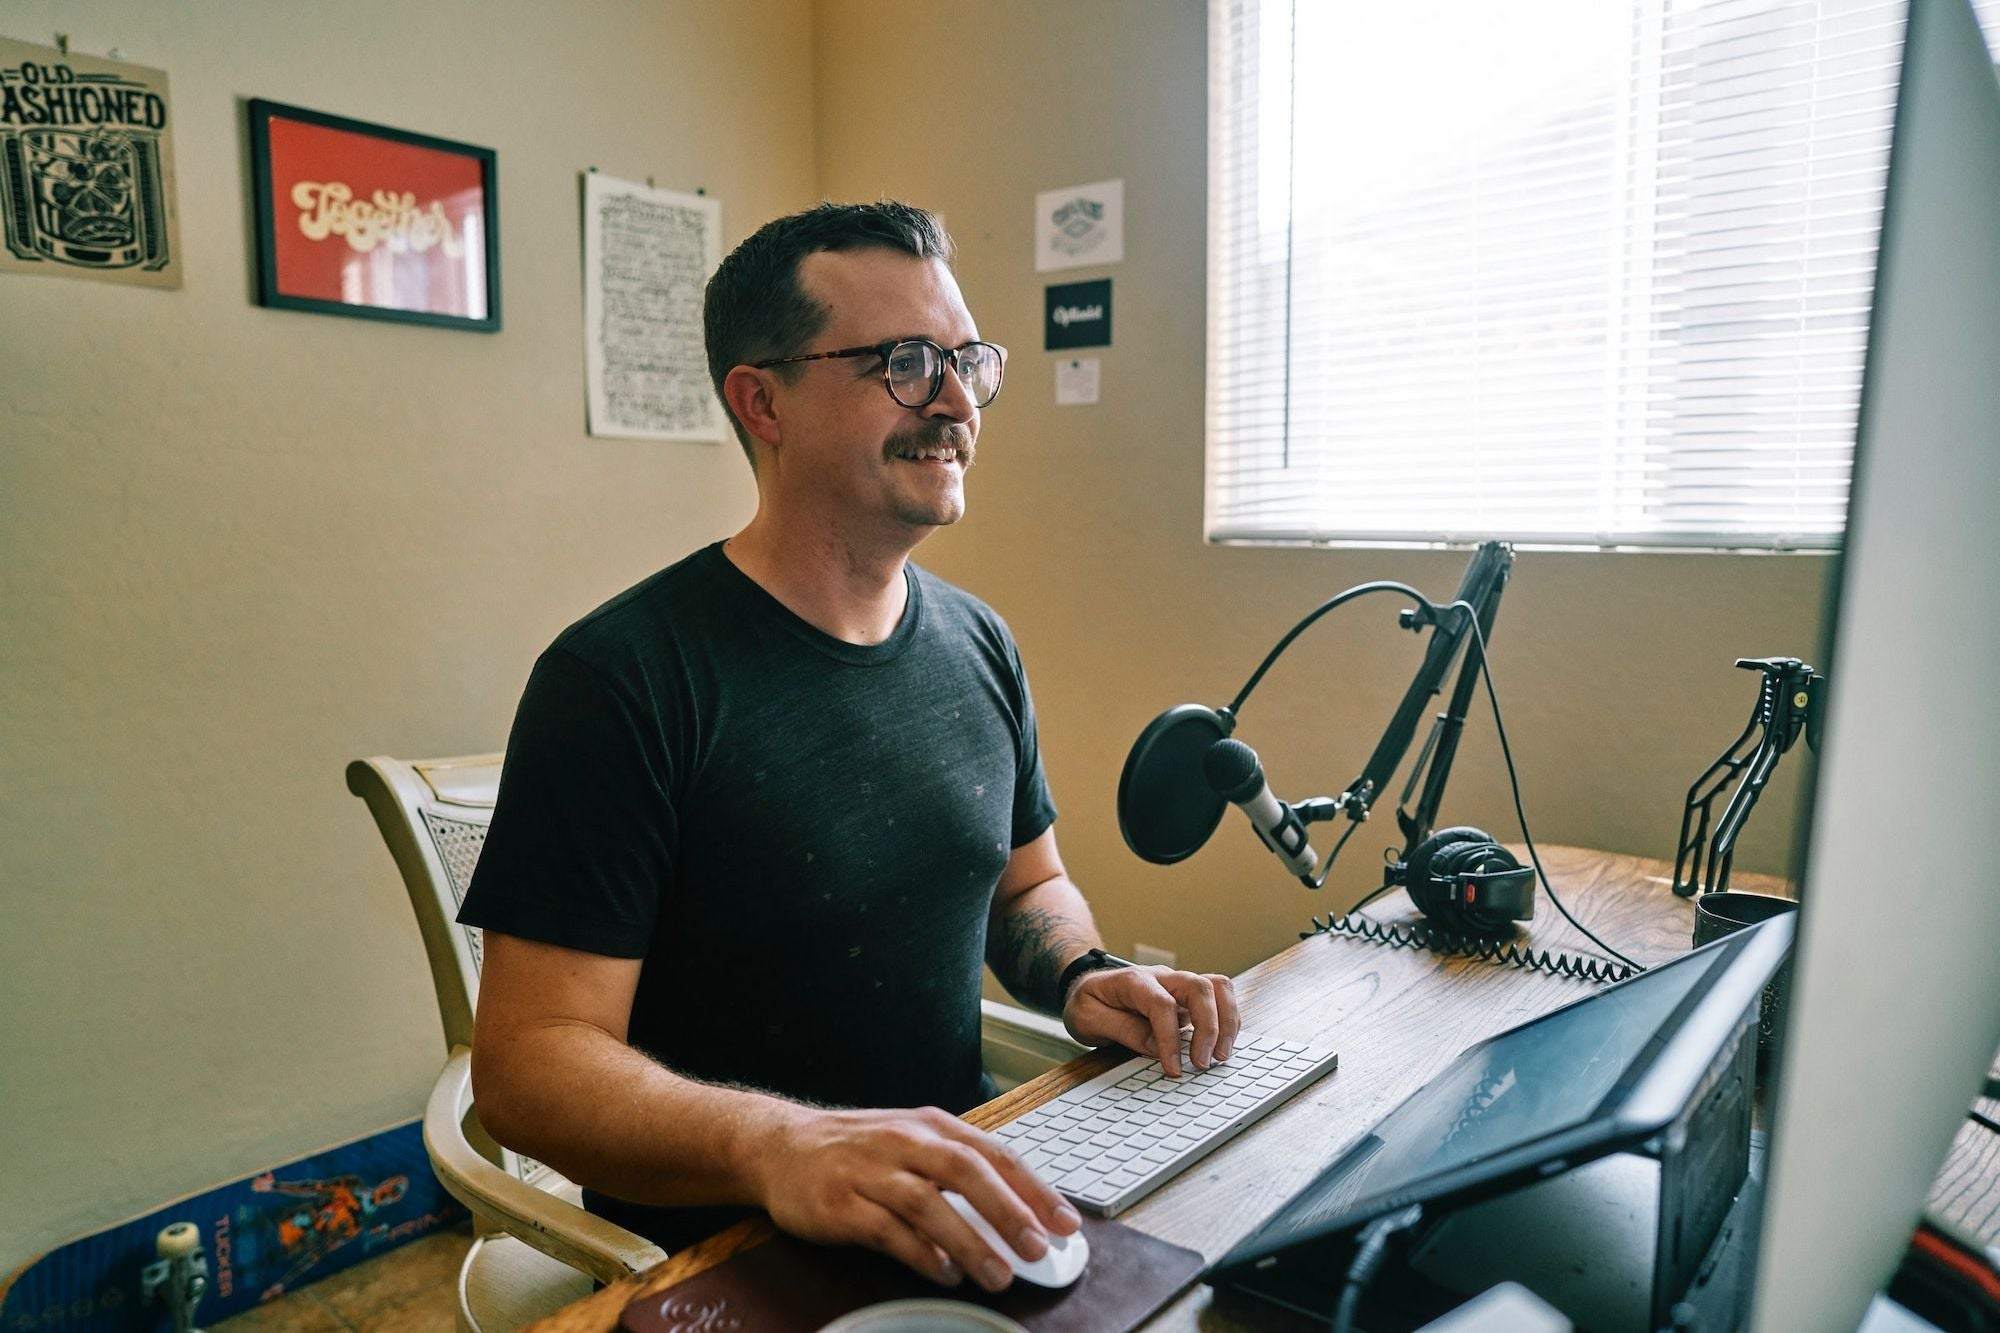 This Online Course Can Help You Launch Your Own Podcast